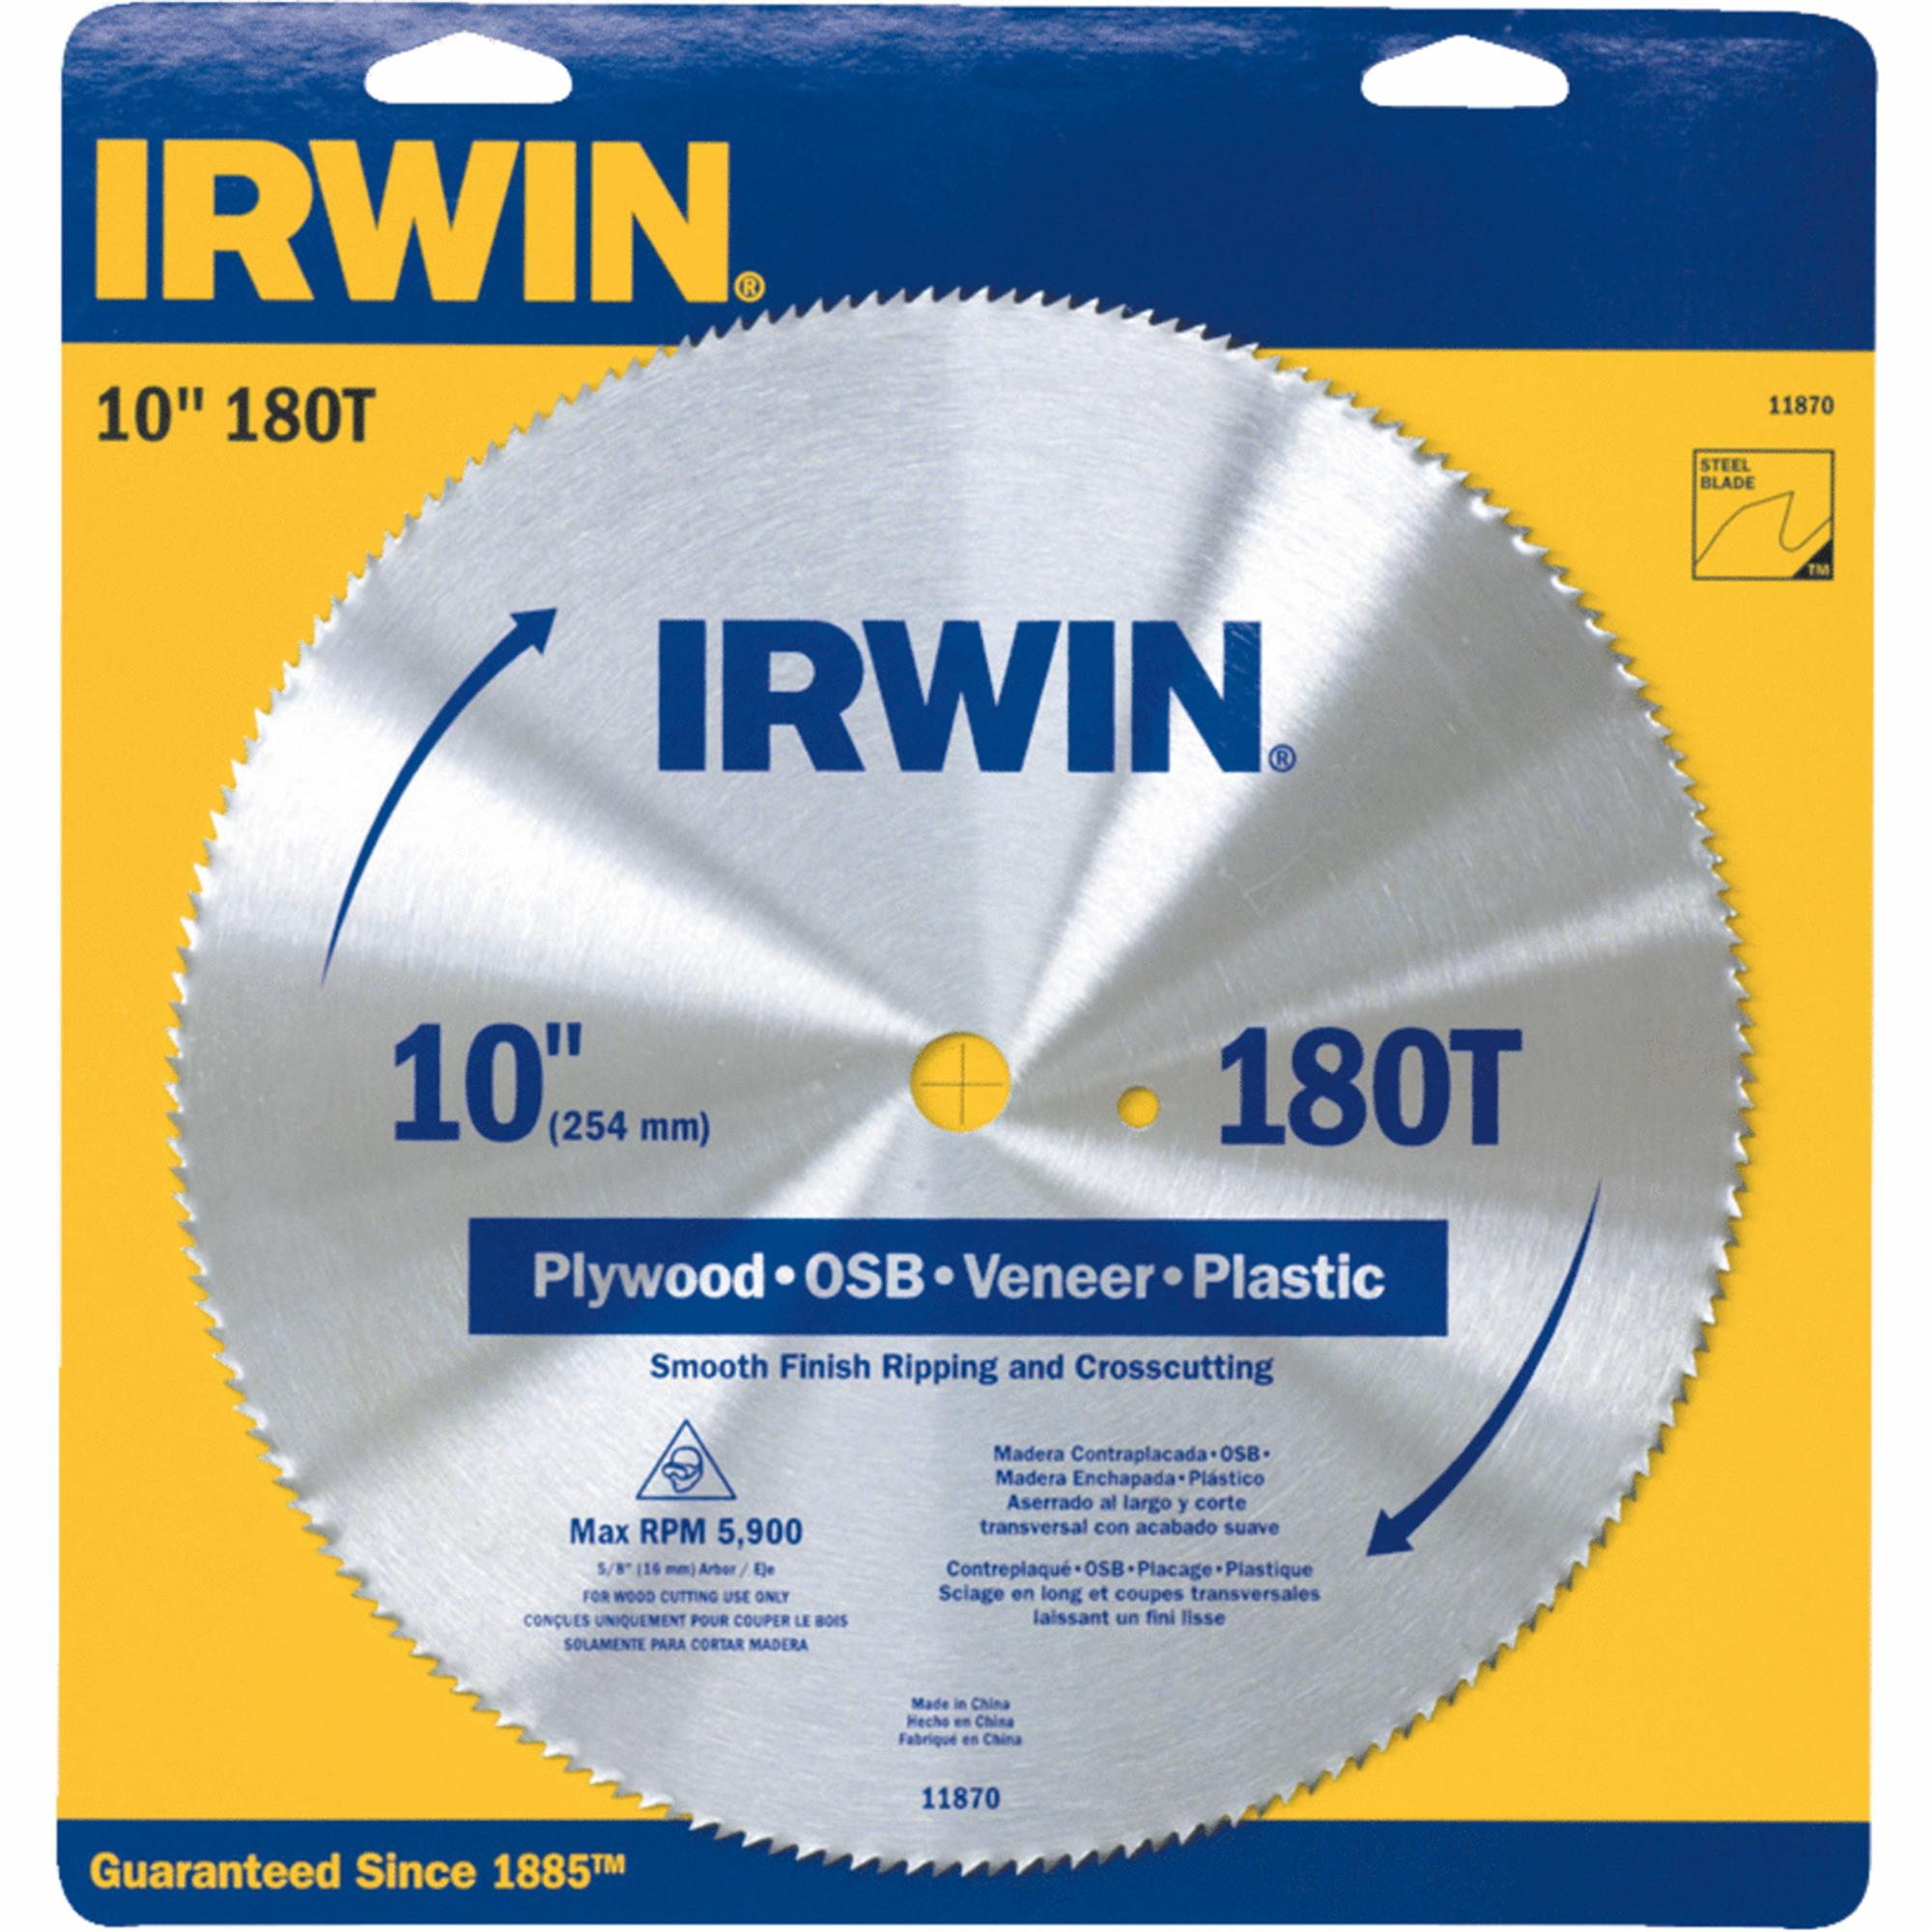 "Irwin 11870 10"" 180T Steel Circular Saw Blades Wood Cutting"